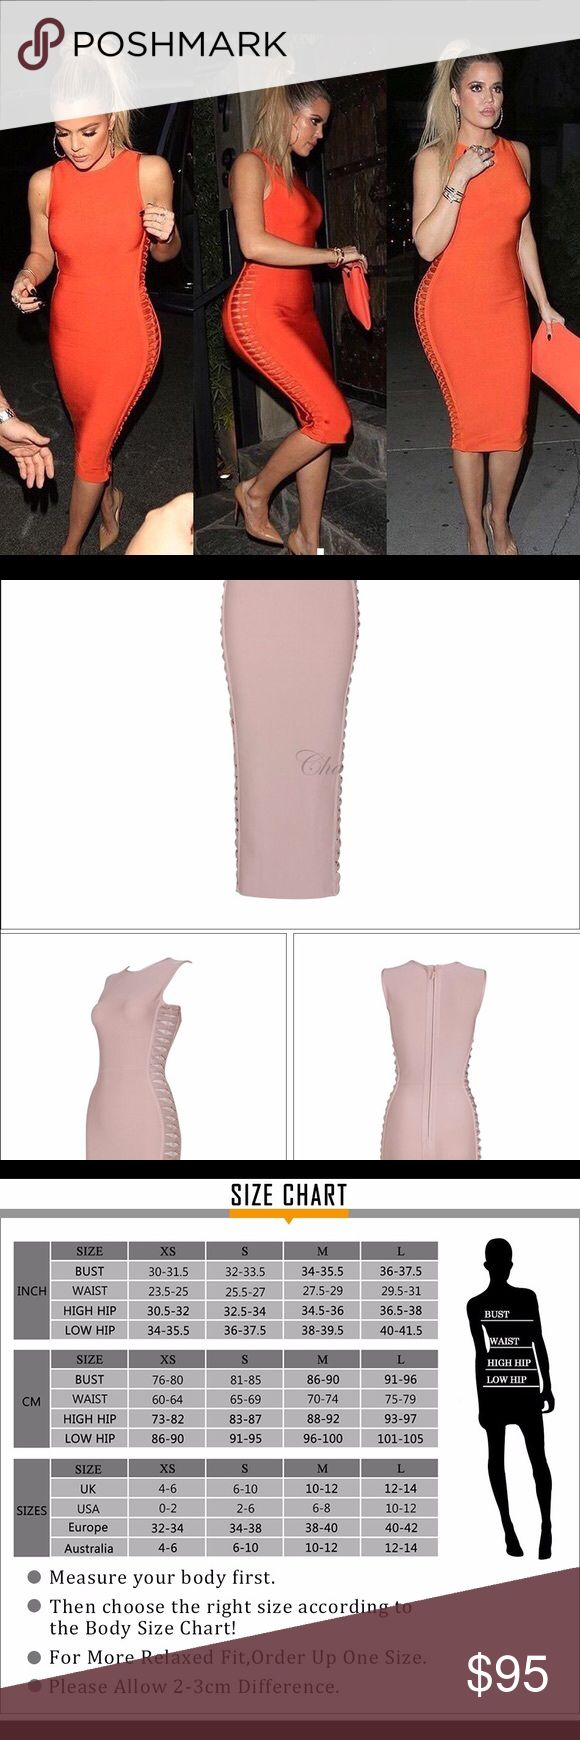 Khloe Kardashian bandage bodycon dress- nude Size MEDIUM!! Khloe Kardashian bandage bodycon dress with lower split at the back. The color is nude/khaki. Never worn. Dresses